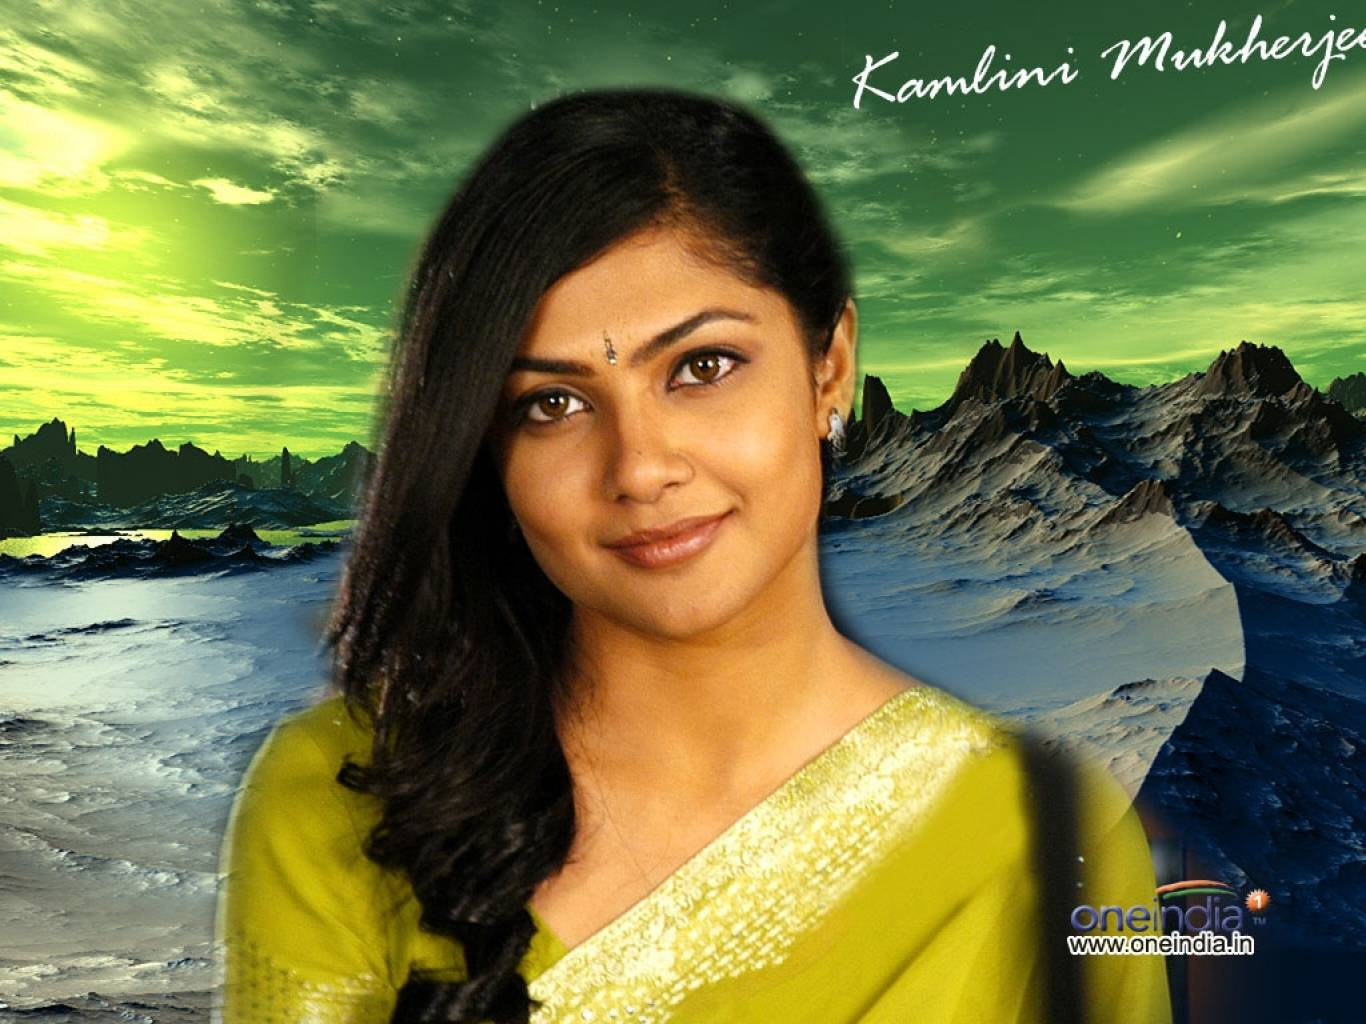 Kamlini Mukherjee Wallpapers